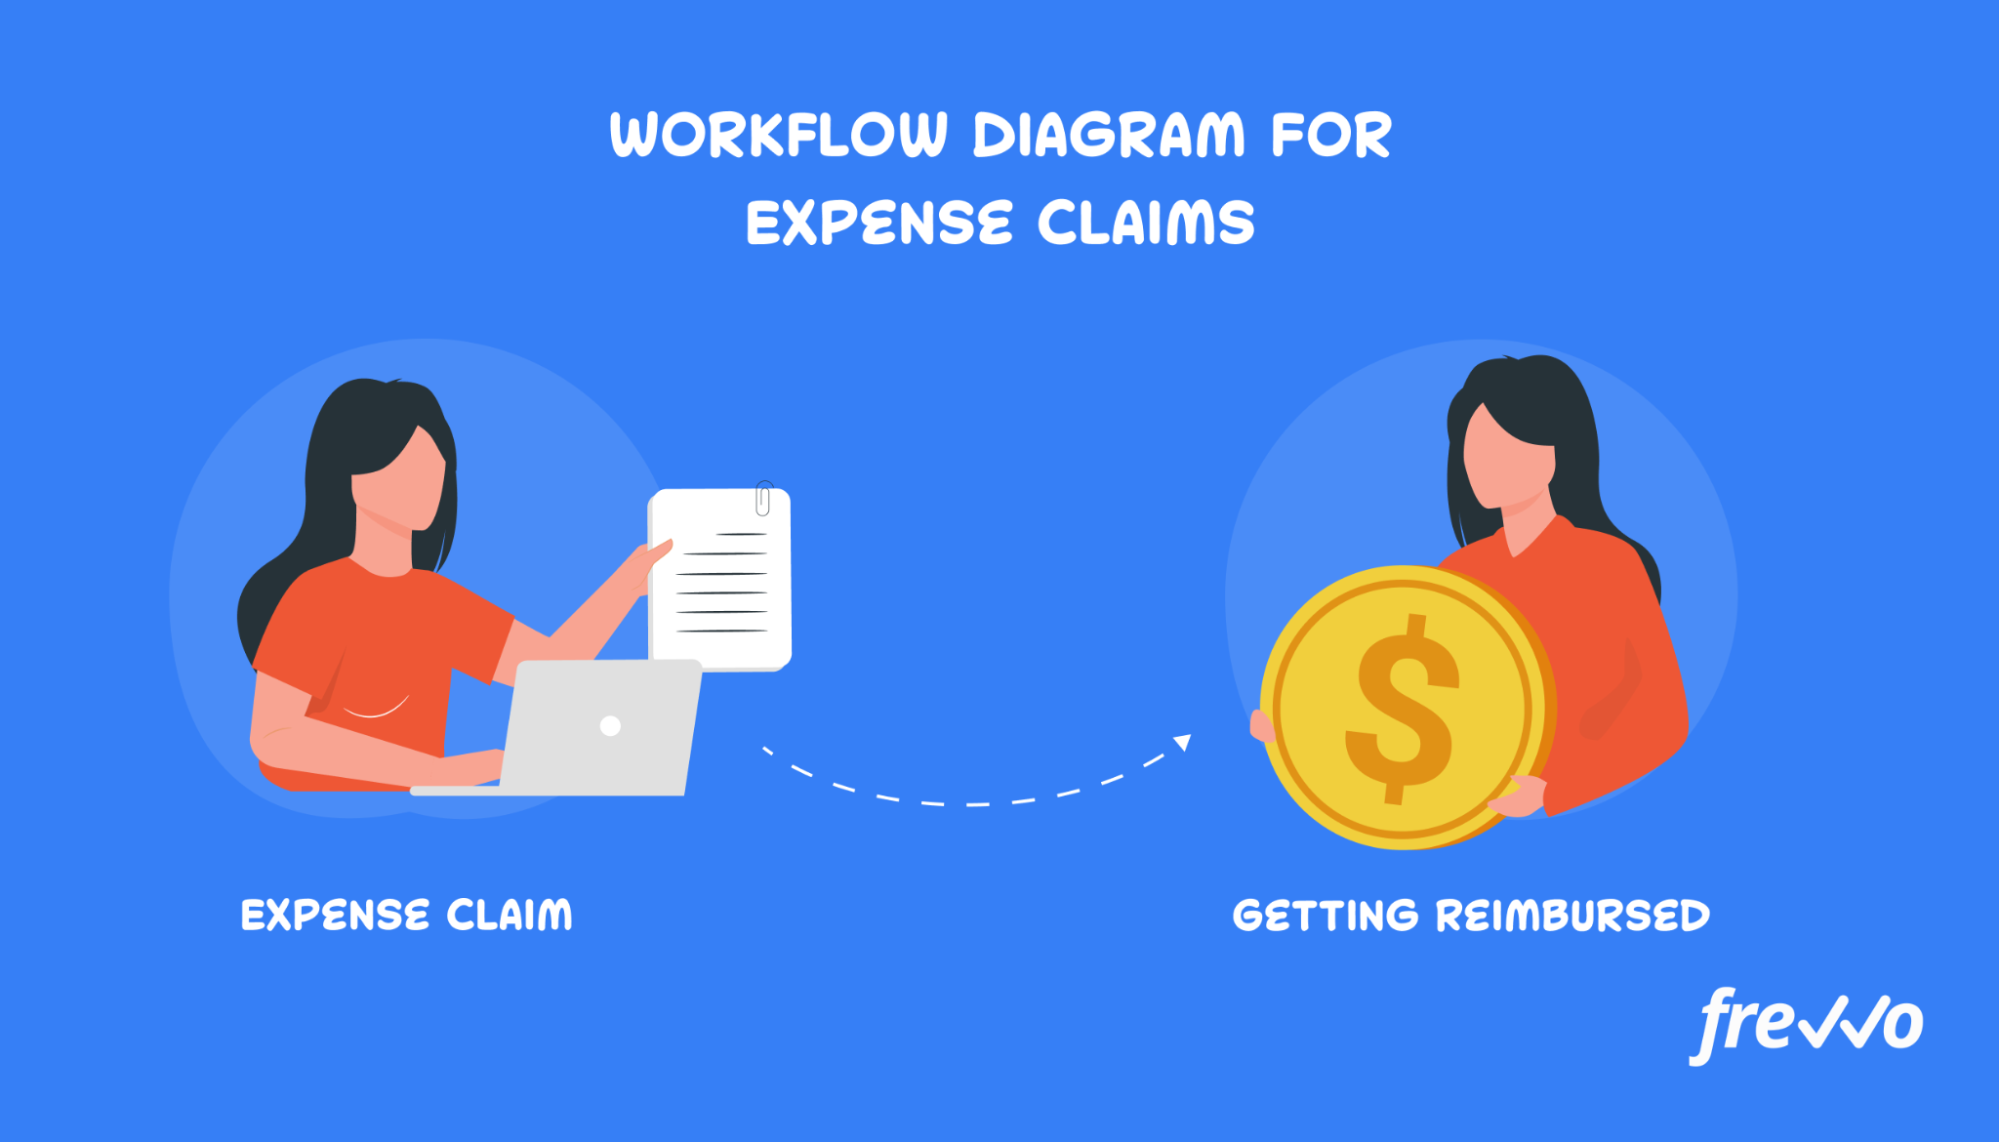 Creating a workflow diagram for expense claims